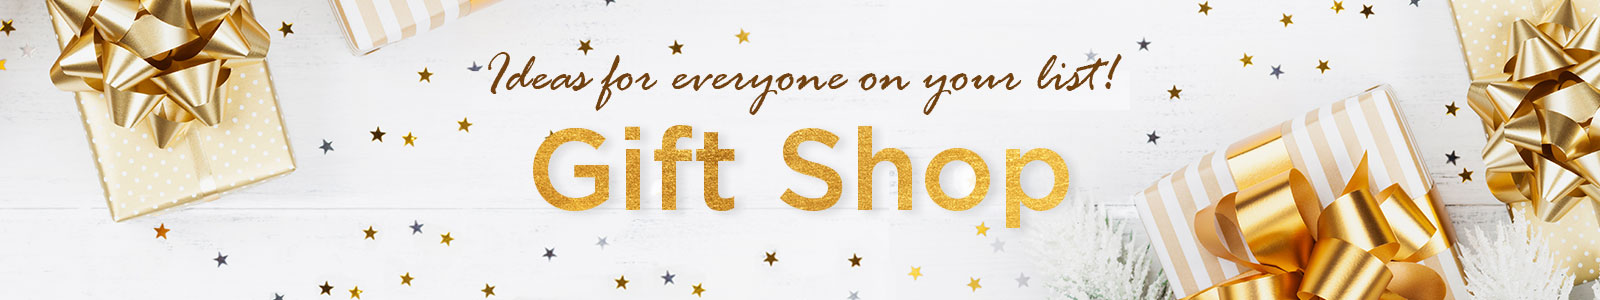 Gift Shop: Gift Ideas for Everyone